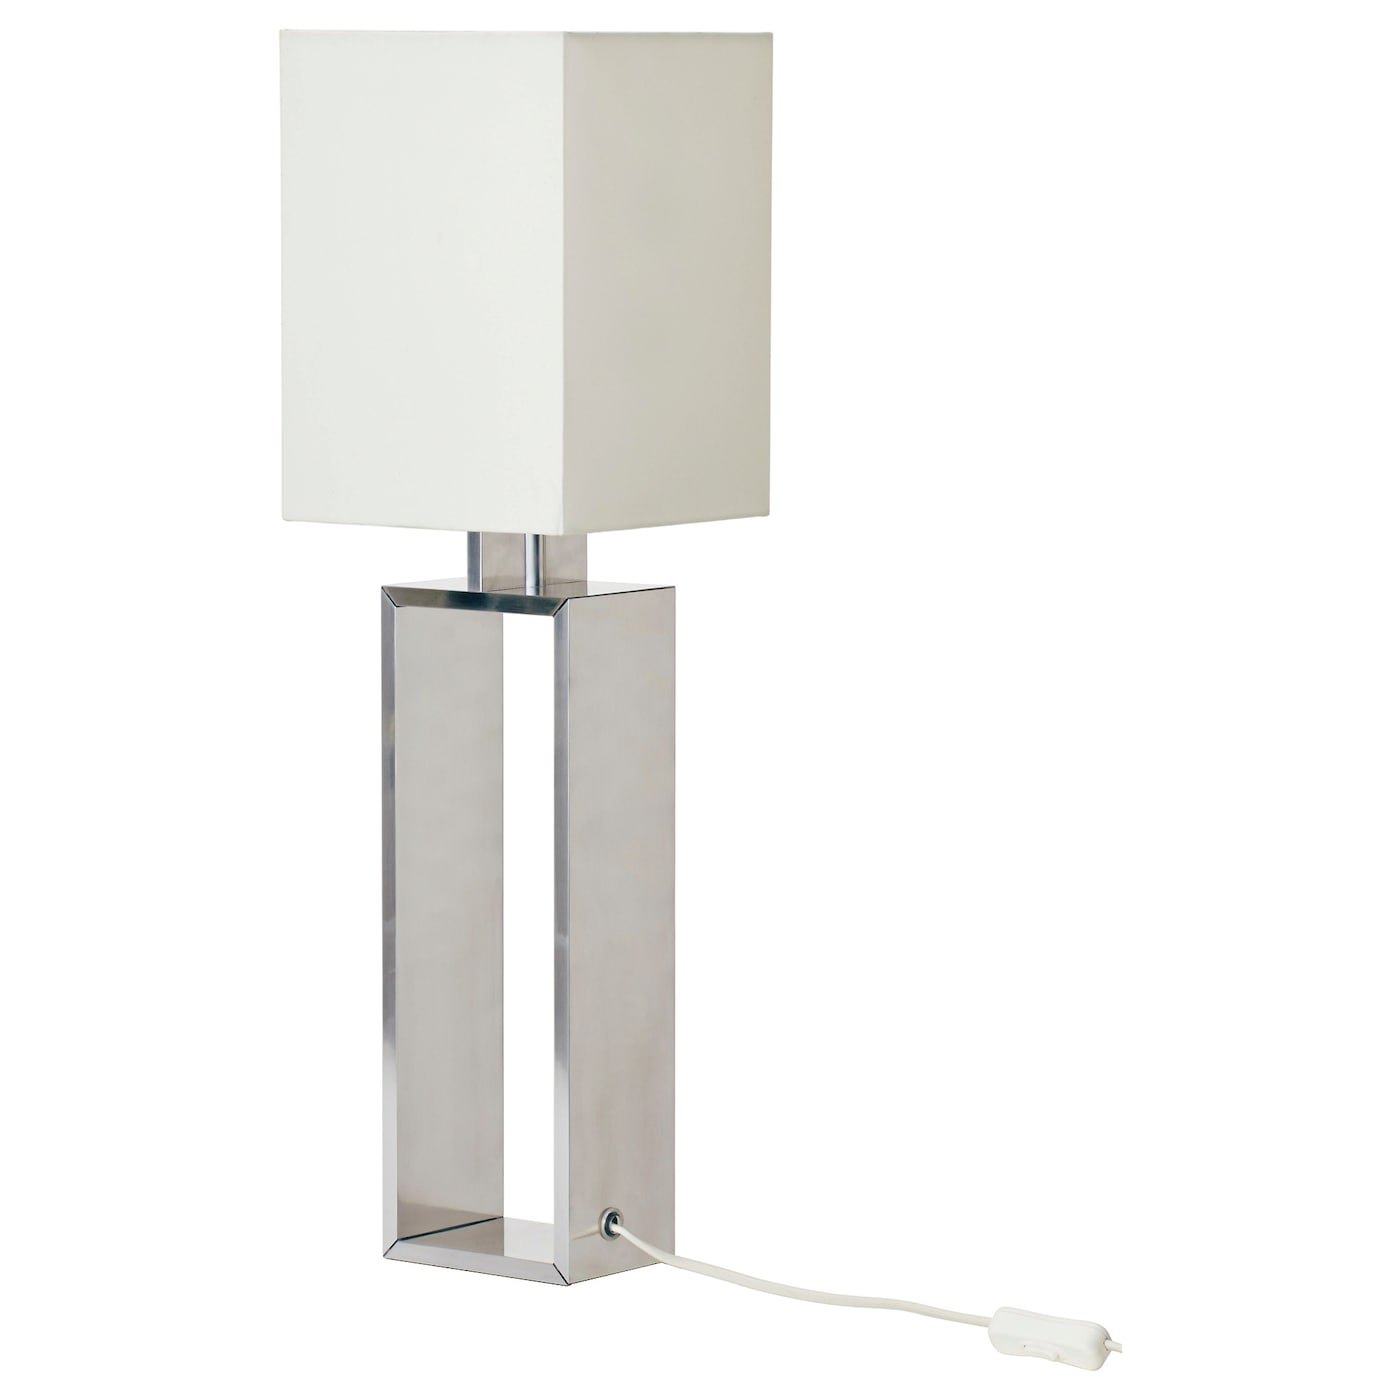 Torsbo table lamp off white ikea ikea torsbo table lamp mozeypictures Choice Image